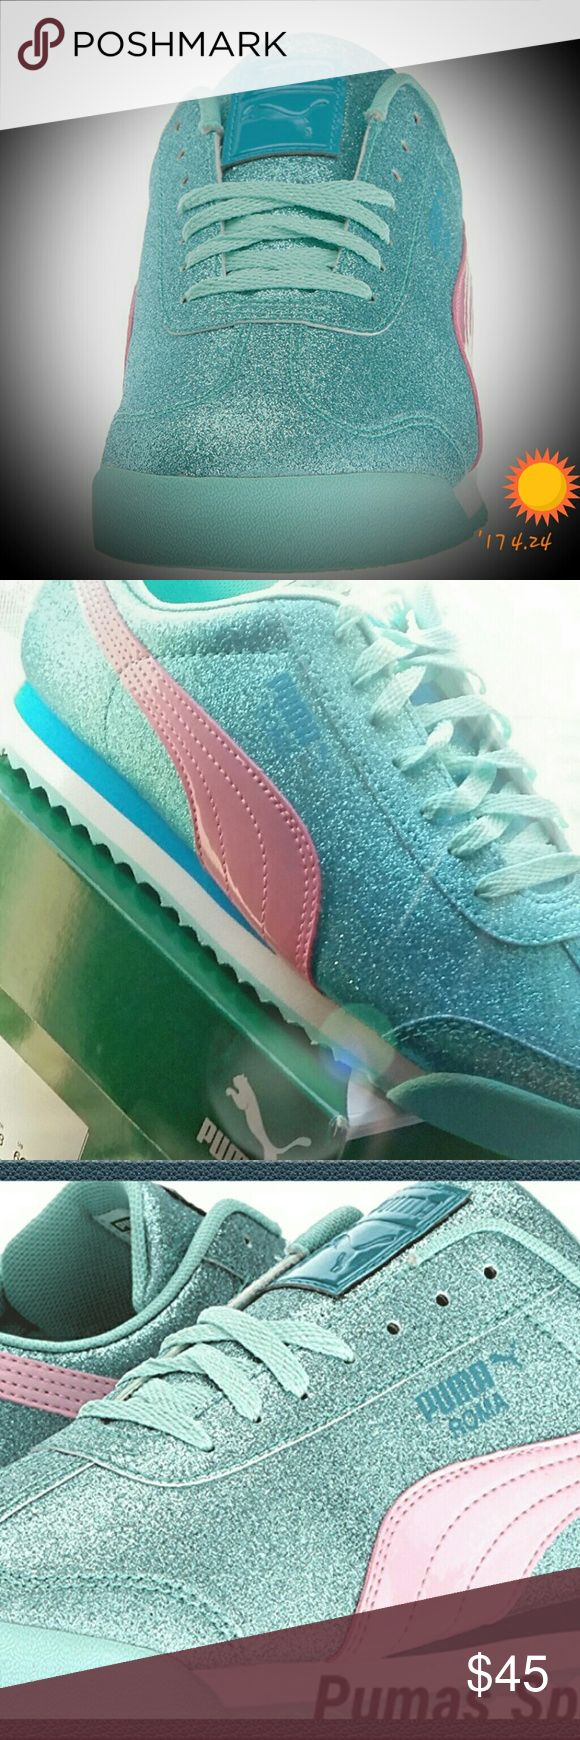 Puma Roma Glam in Aqua Blue! Glitz & Glam with these Lovely Pumas in Aqua Blue Shine! Brand New Size 6y or 7.5 in Woman or 8 If you like a snug fit; -) Puma Shoes Sneakers